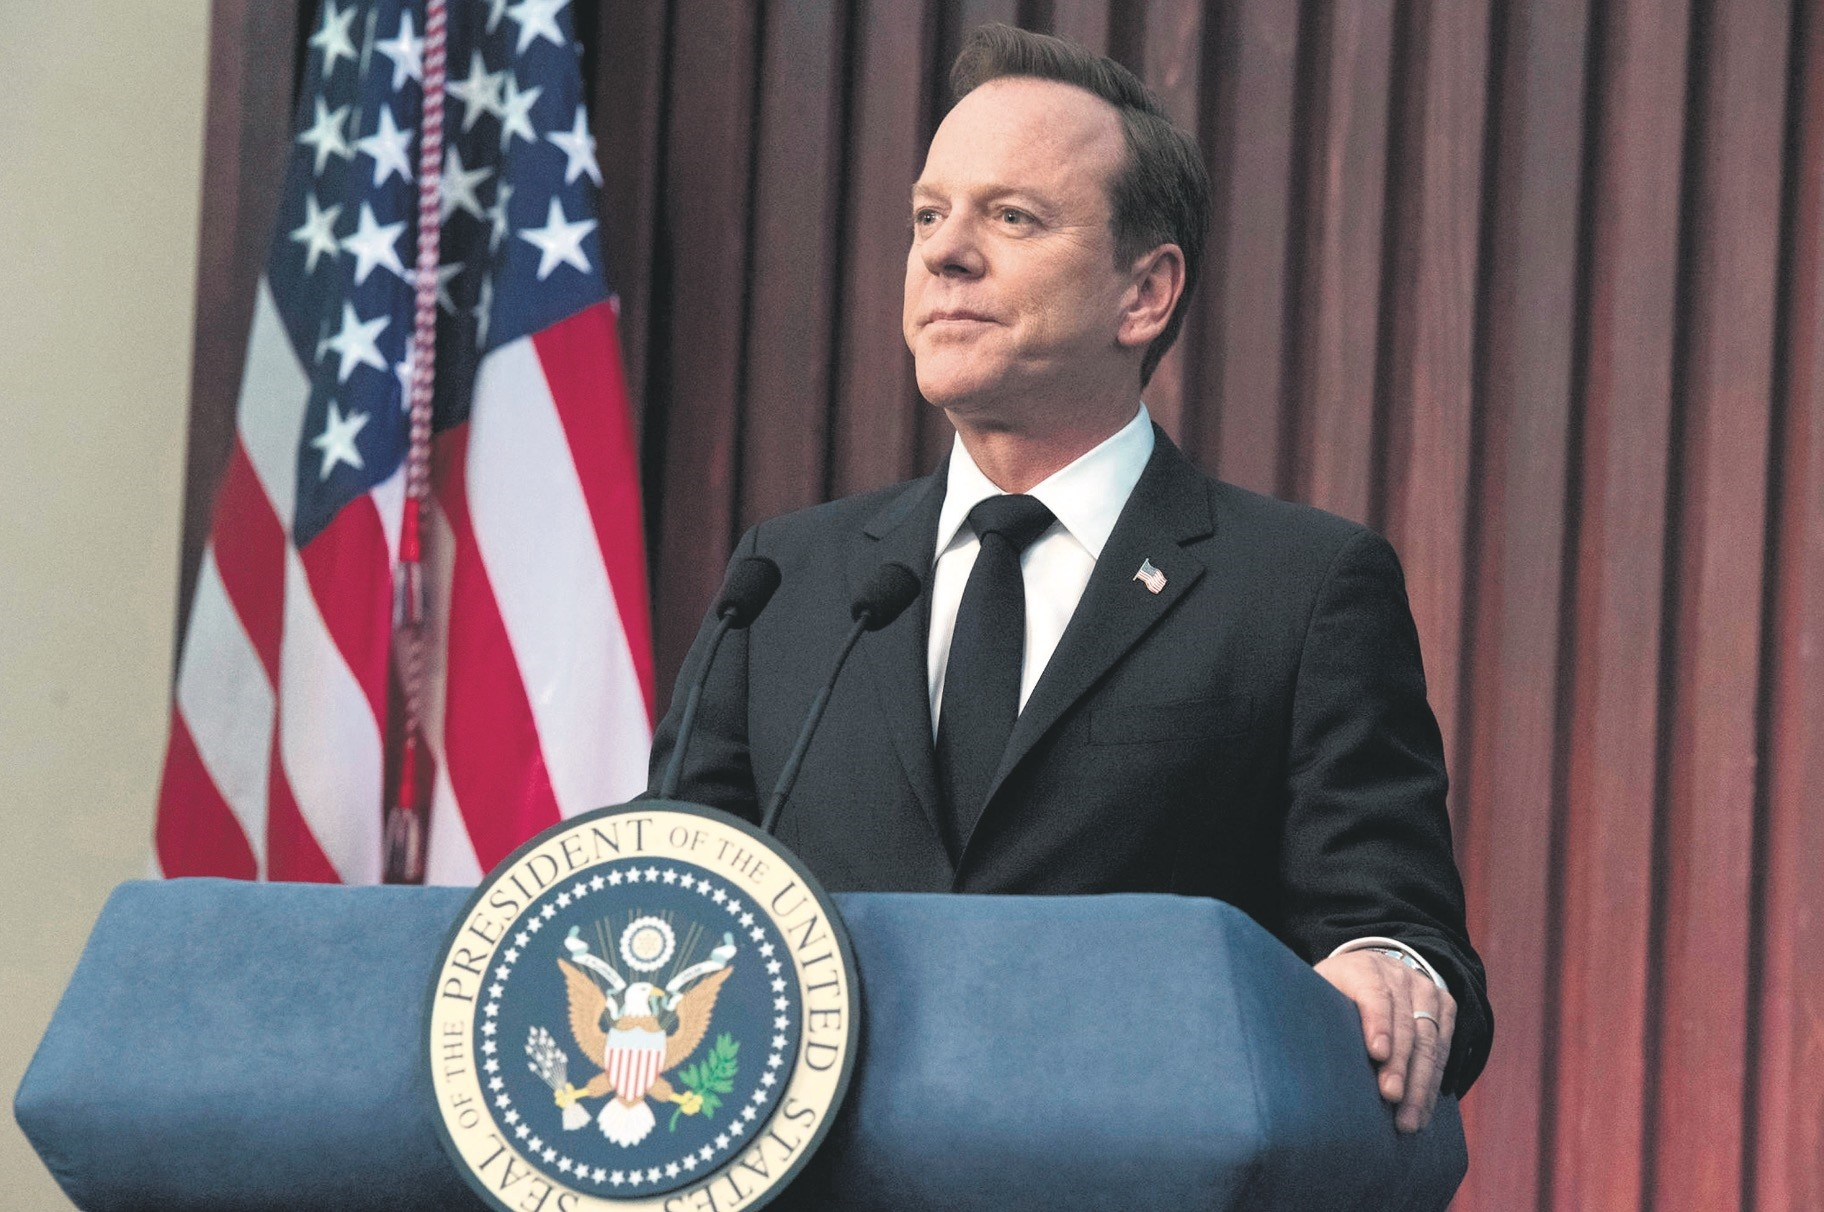 Played by Kiefer Sutherland, the character Tom Kirkman becomes the U.S. president as the designated survivor.